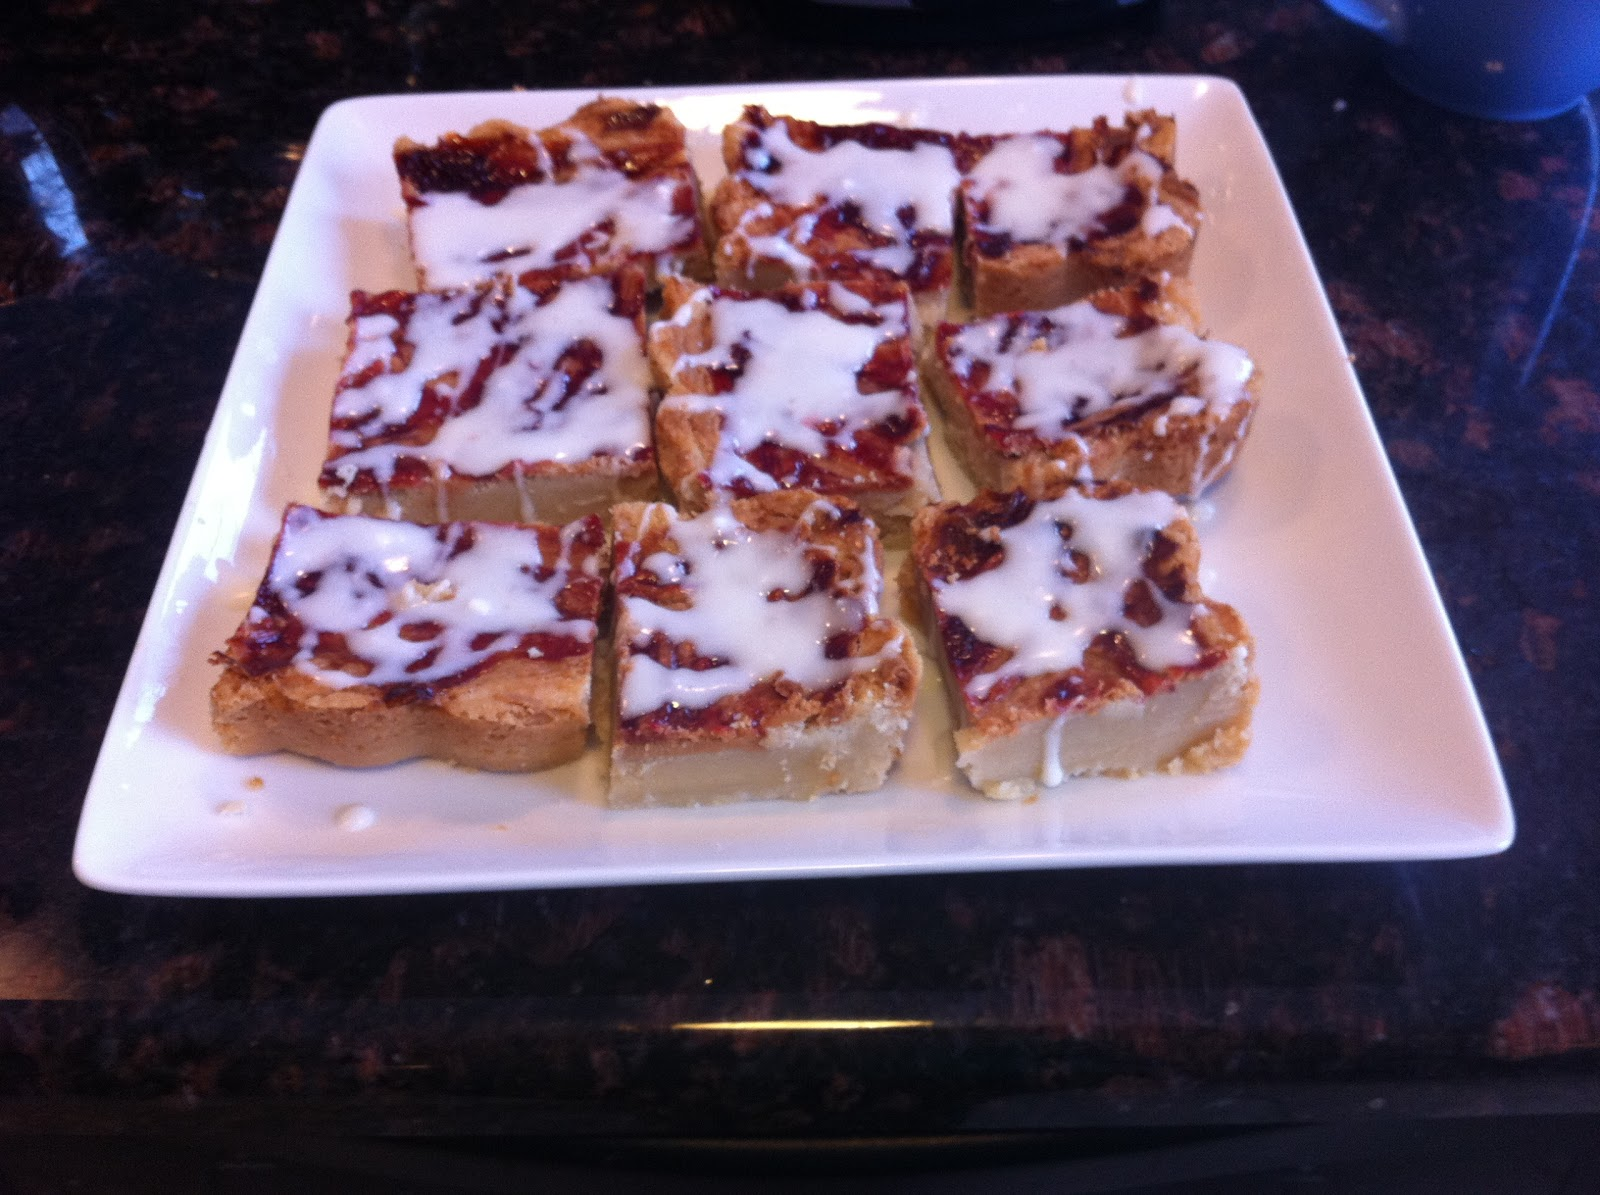 Flavors by Four: Peanut Butter and Jelly Shortbread Bars